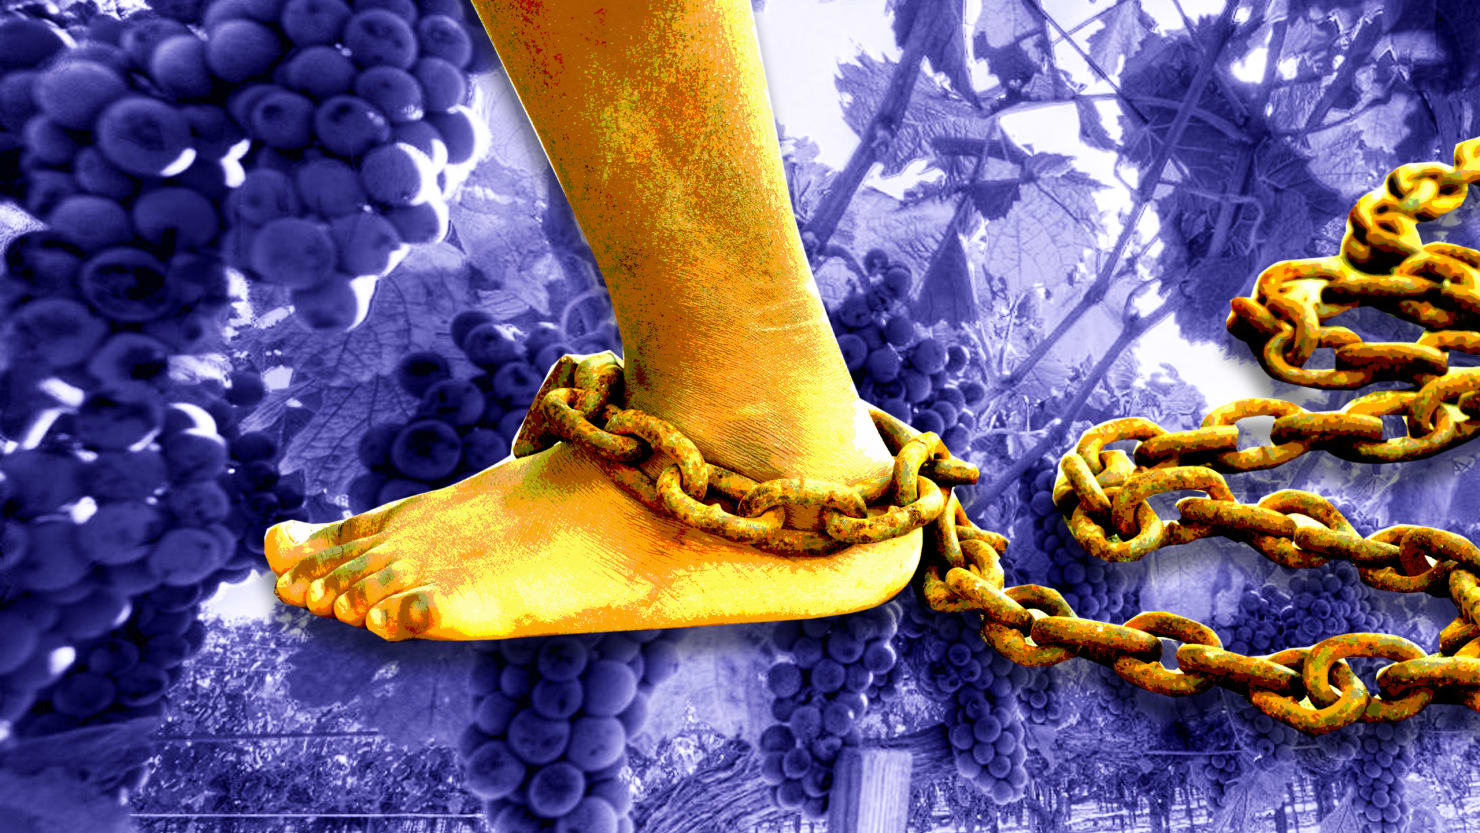 California's Wine Industry was Built on Slave Labor